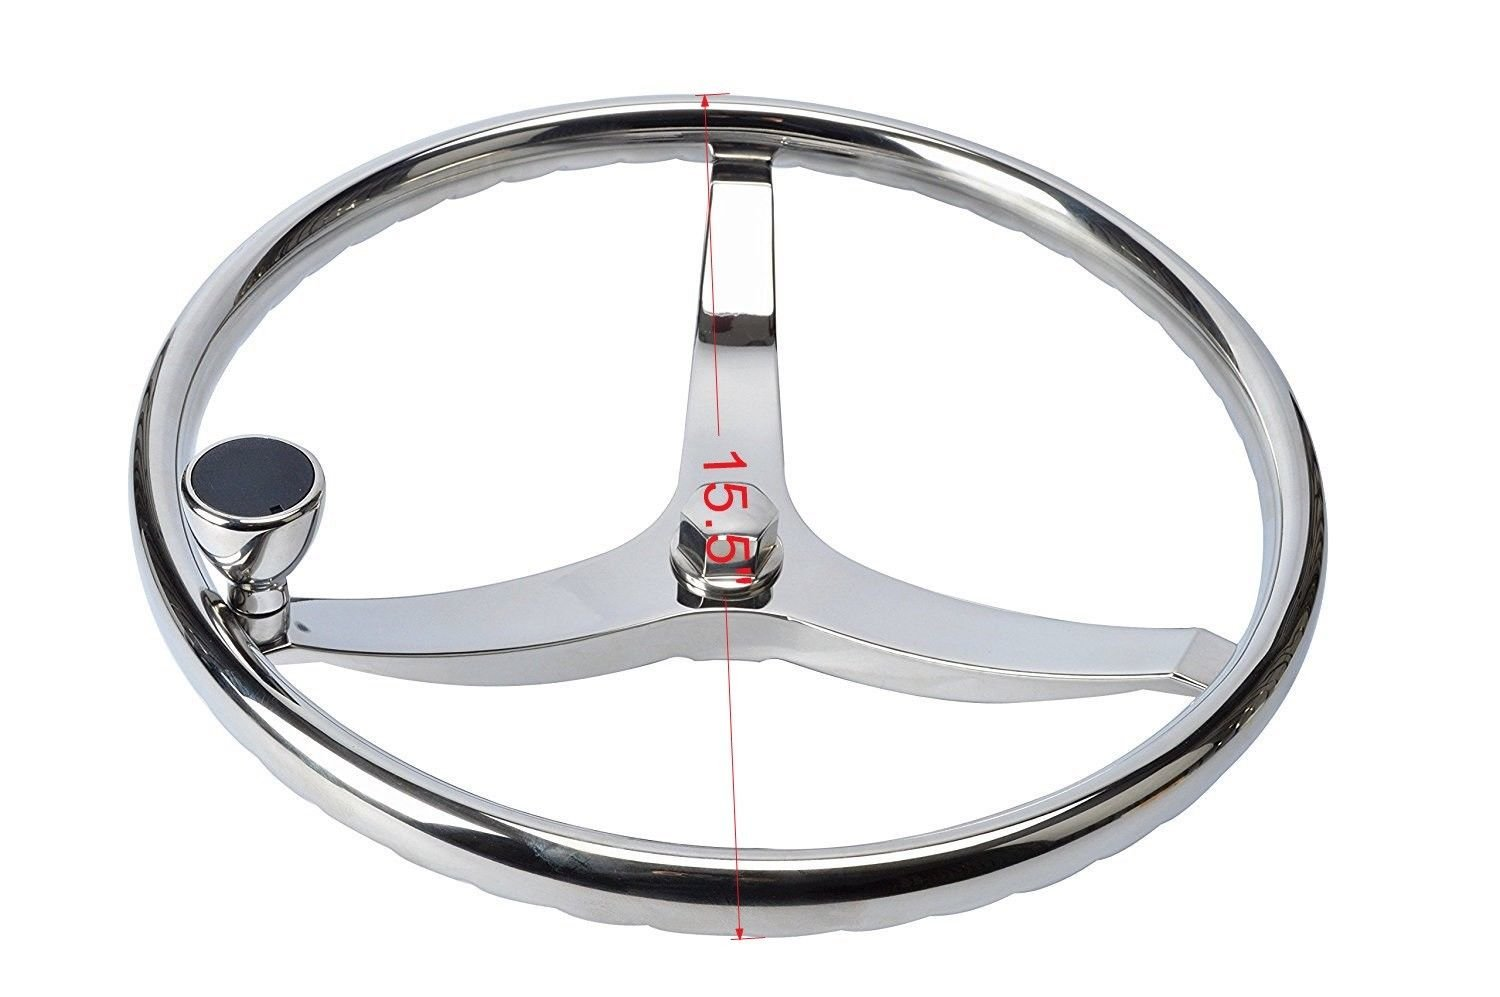 Amarine-made Stainless Steel Boat Steering Wheel 3 Spoke 15-1/2'' Dia, with 5/8'' -18 Nut and Turning Knob for Seastar and Verado